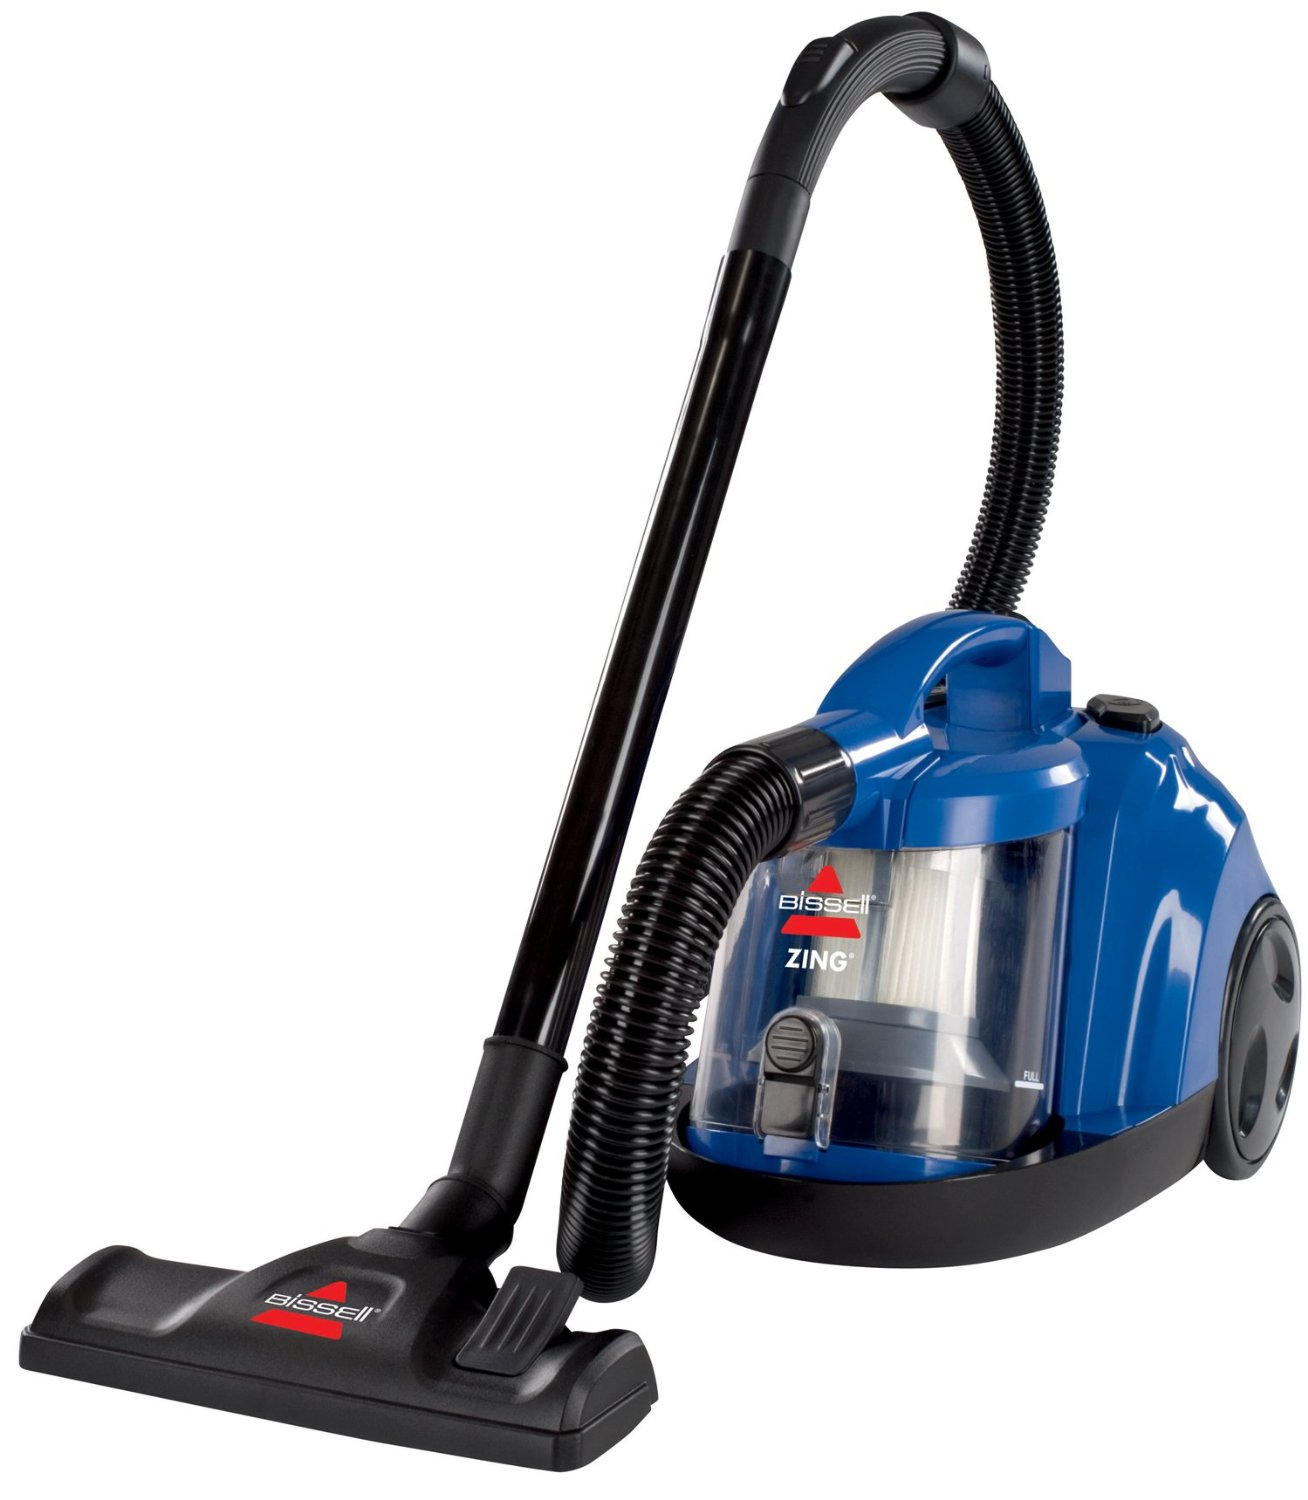 Best BISSELL Zing Bagless Canister Vacuum, Caribbean Blue Review